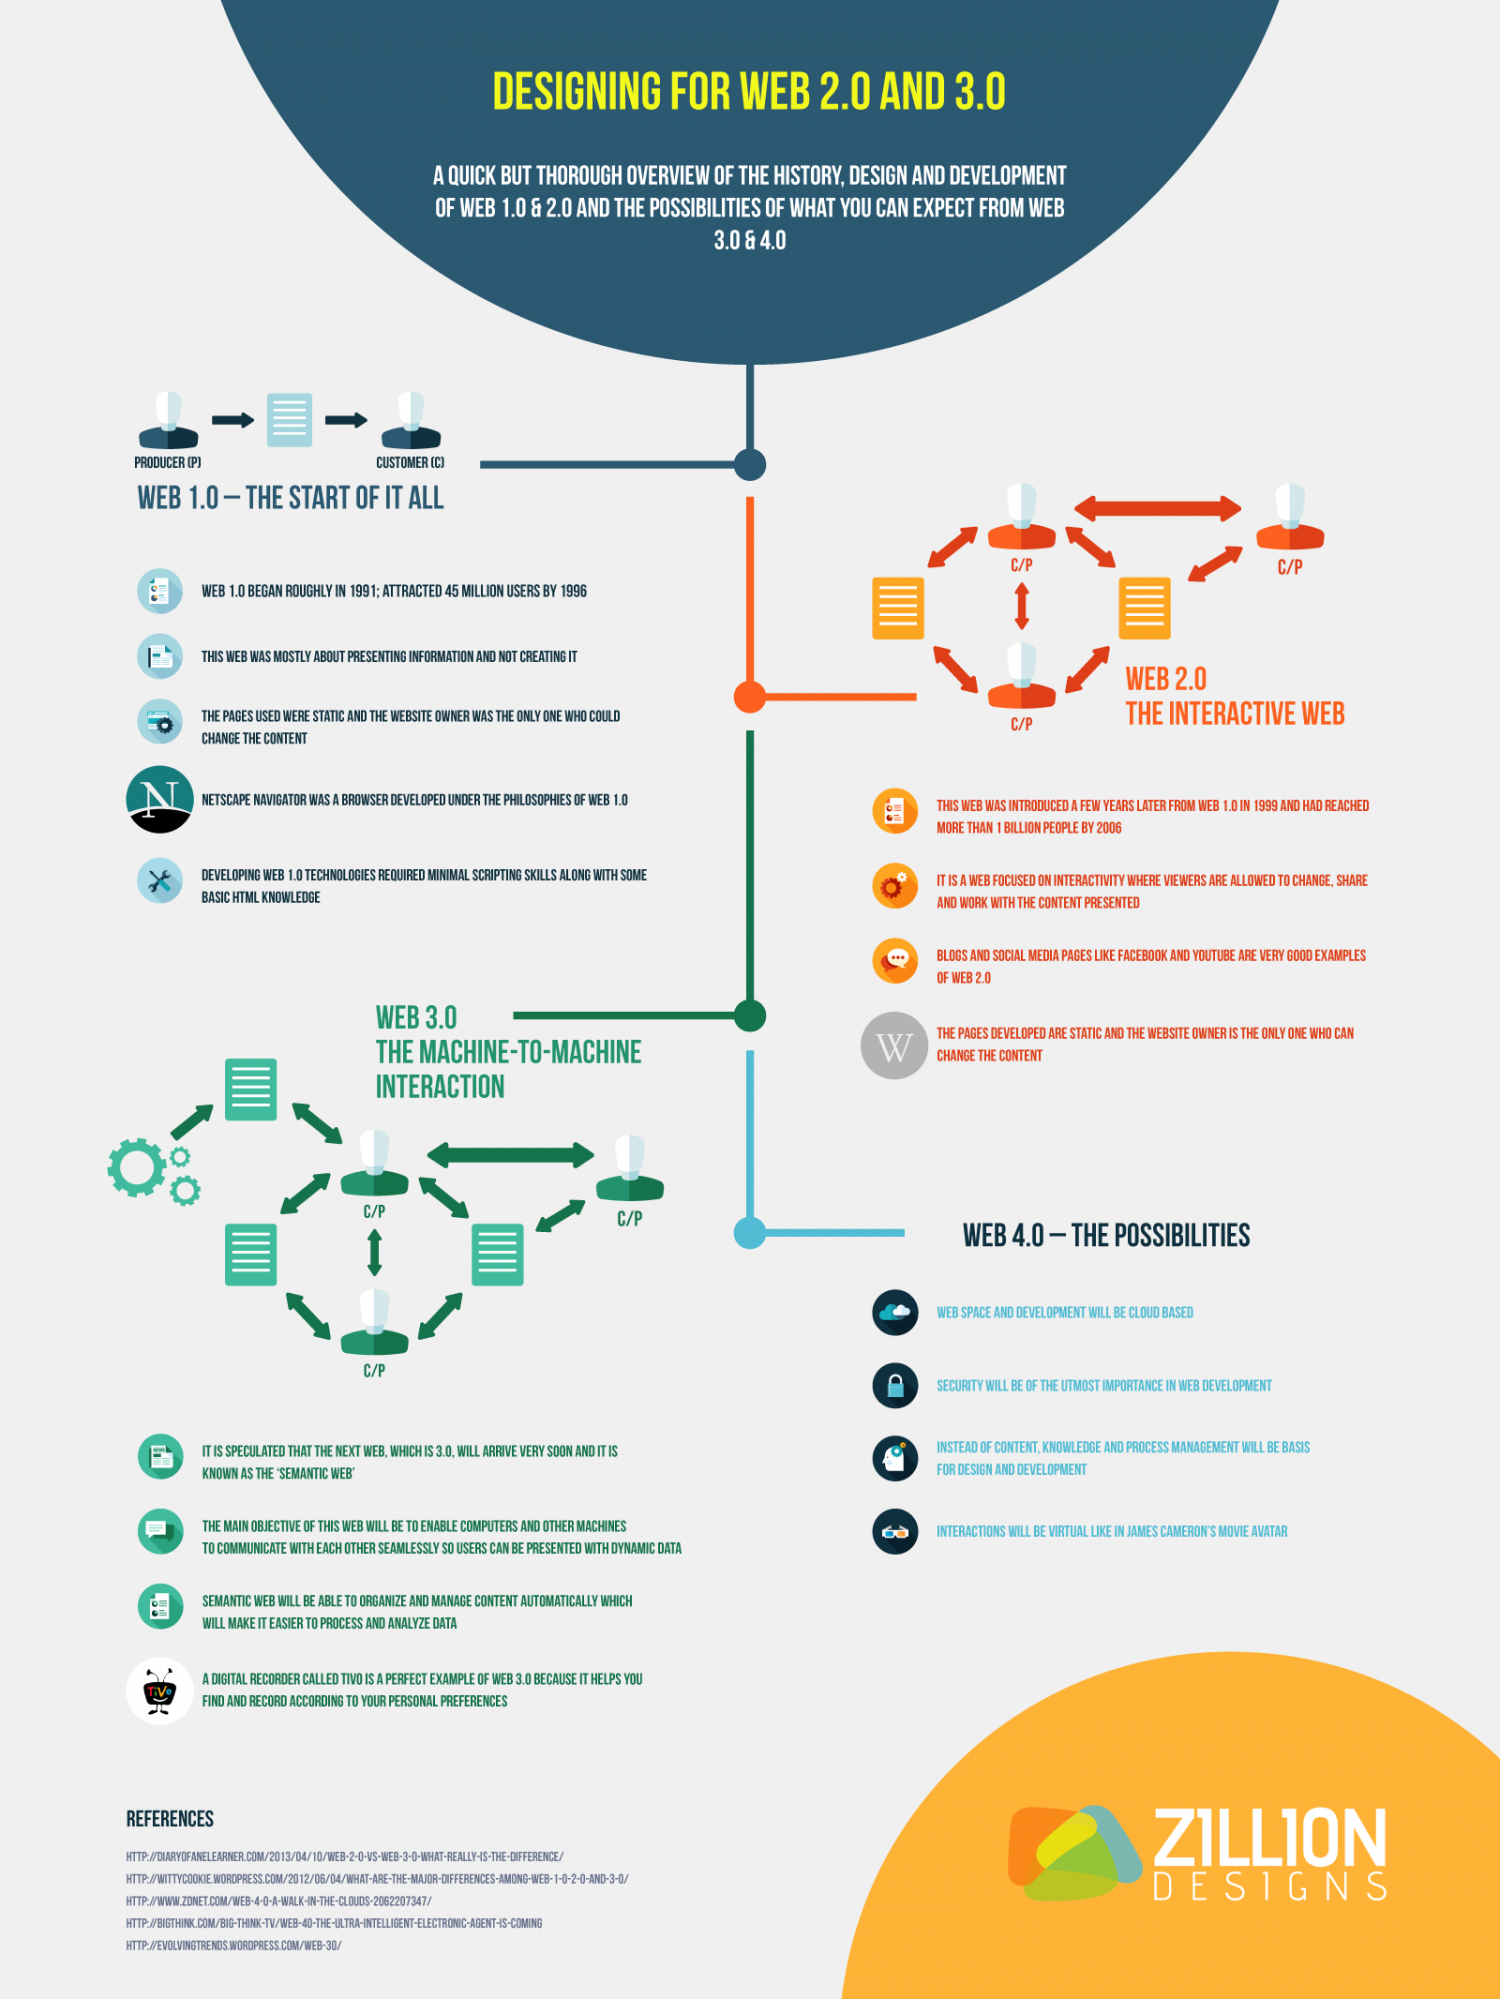 Designing and Developing for Web 2.0 and 3.0 Infographic